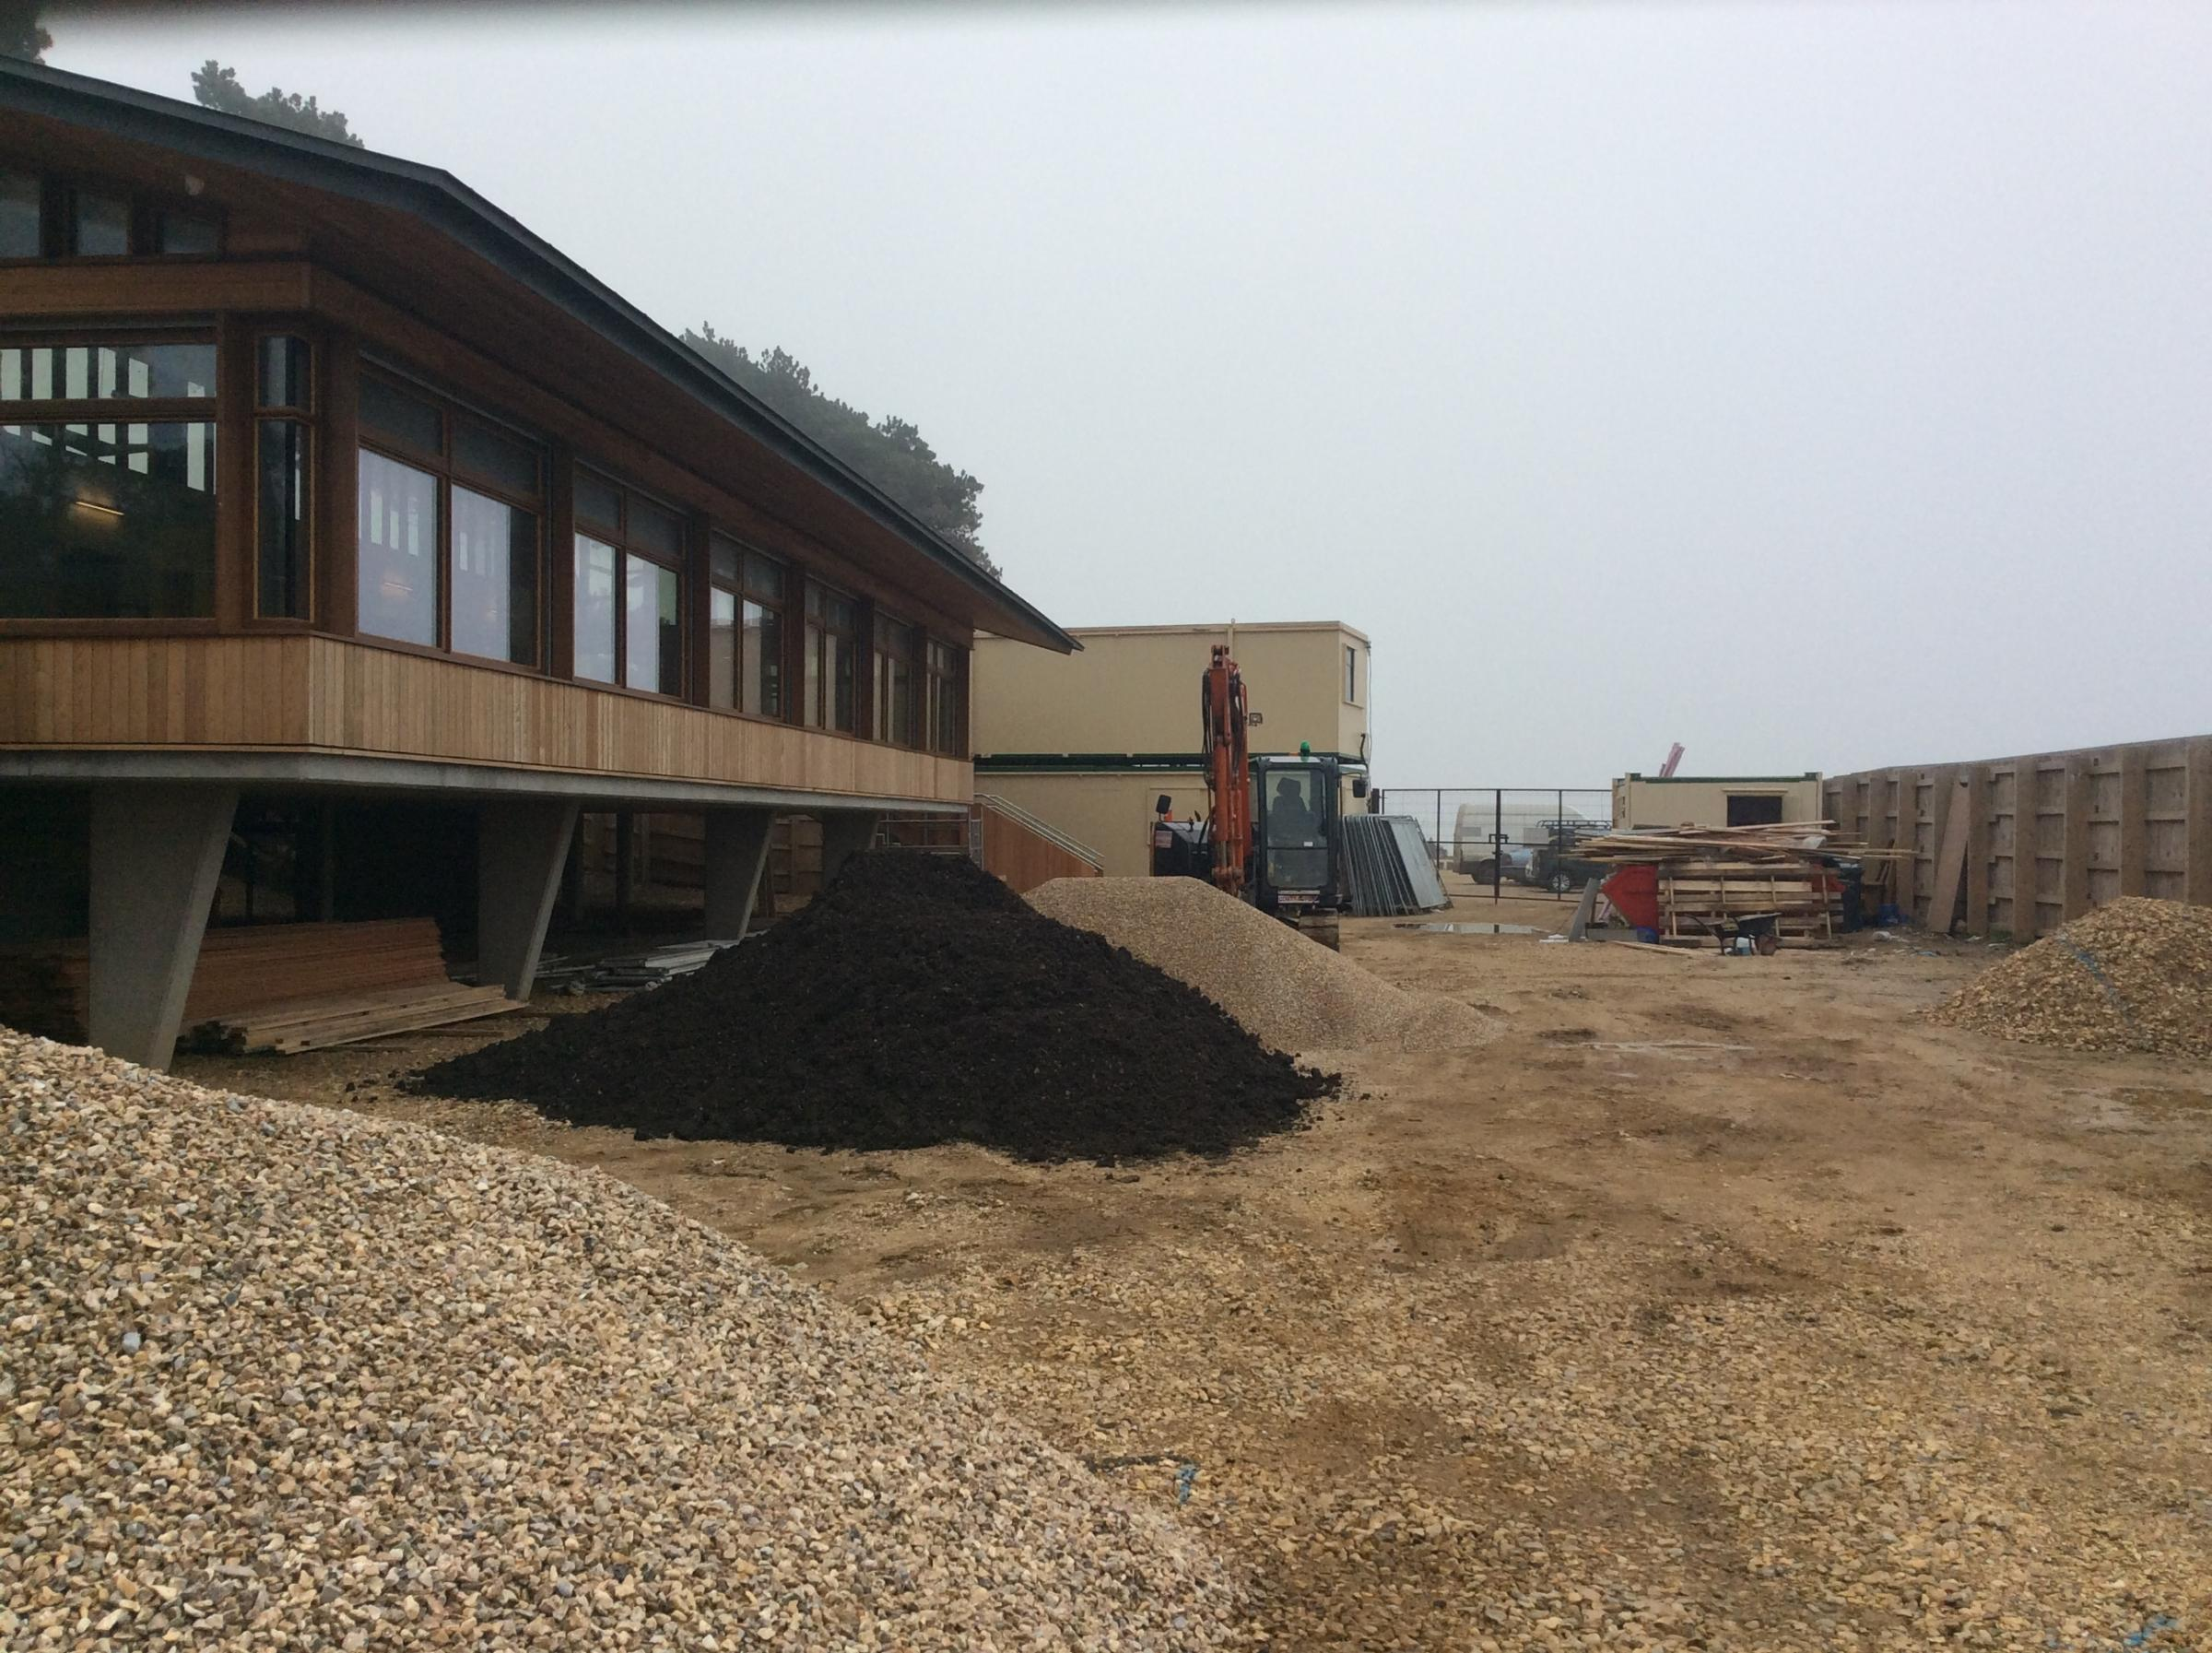 The new cafe and visitor centre being built at Lepe Country Park.